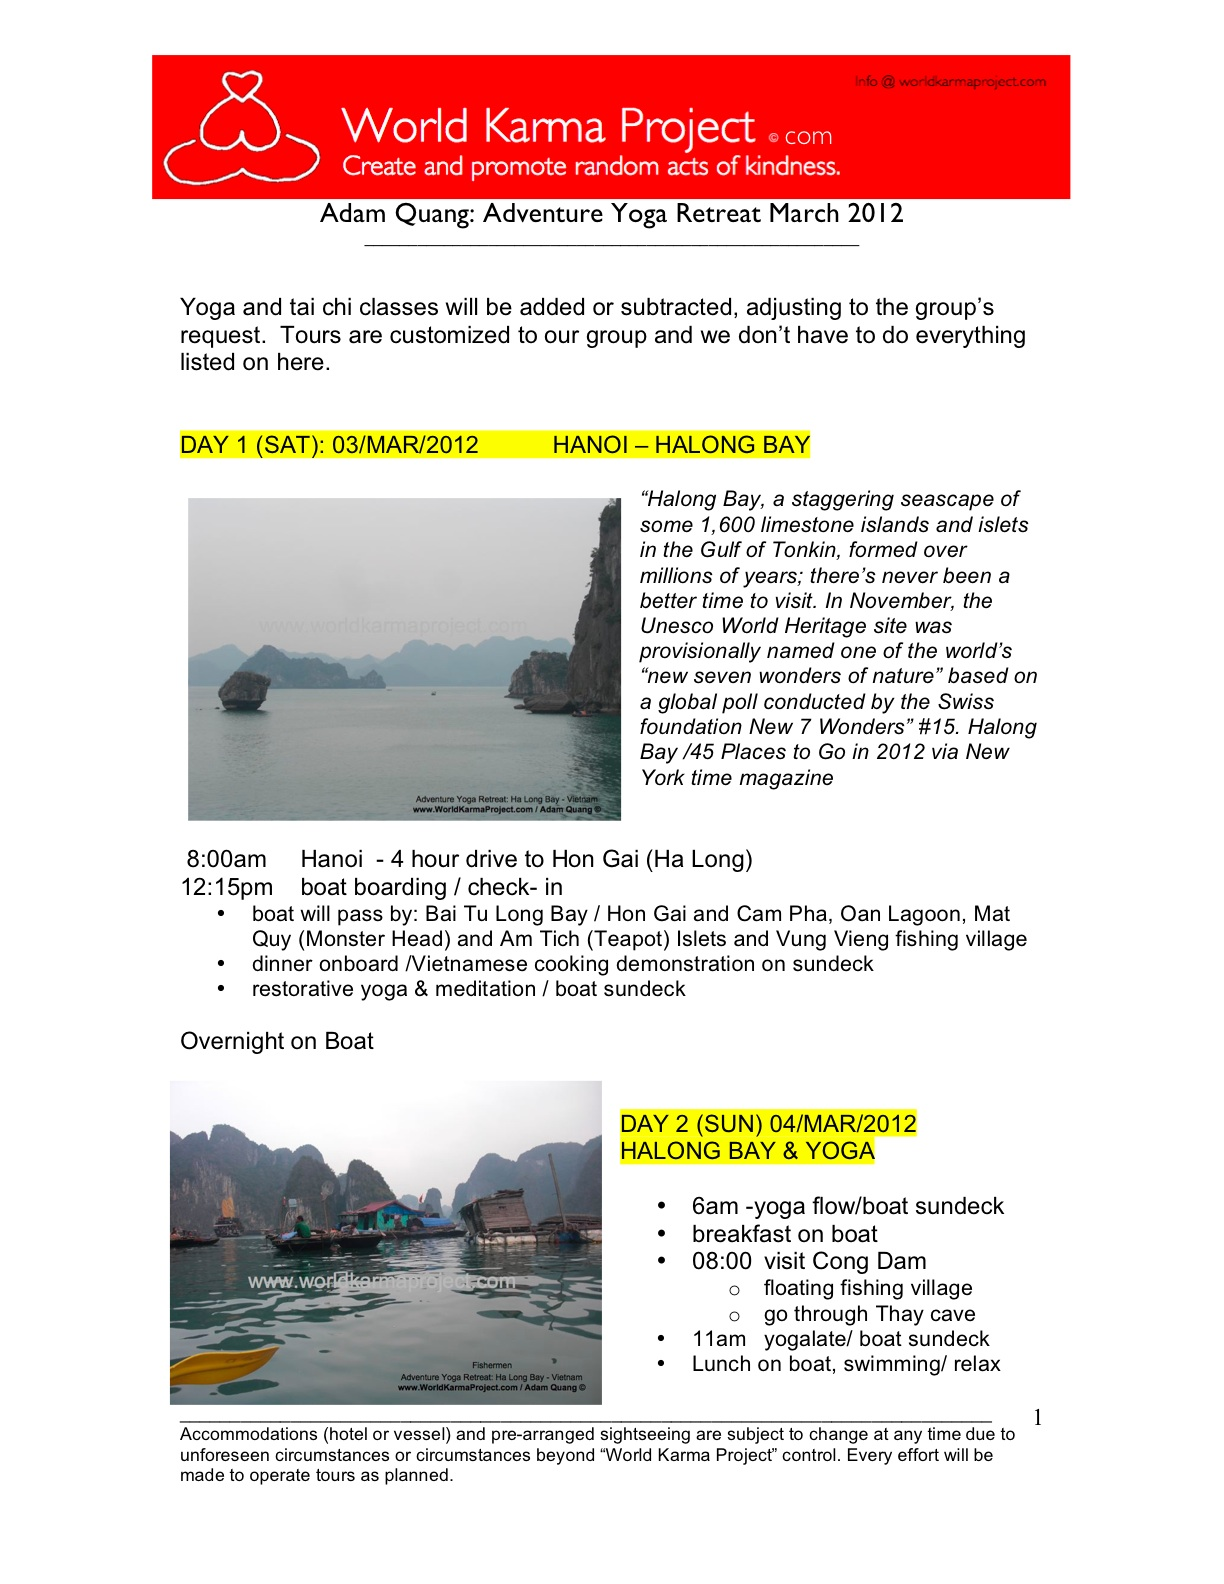 1-Adventure yoga retreat - Halong bay Tour itinerary -Mar_3-17_2012 -Edit JC